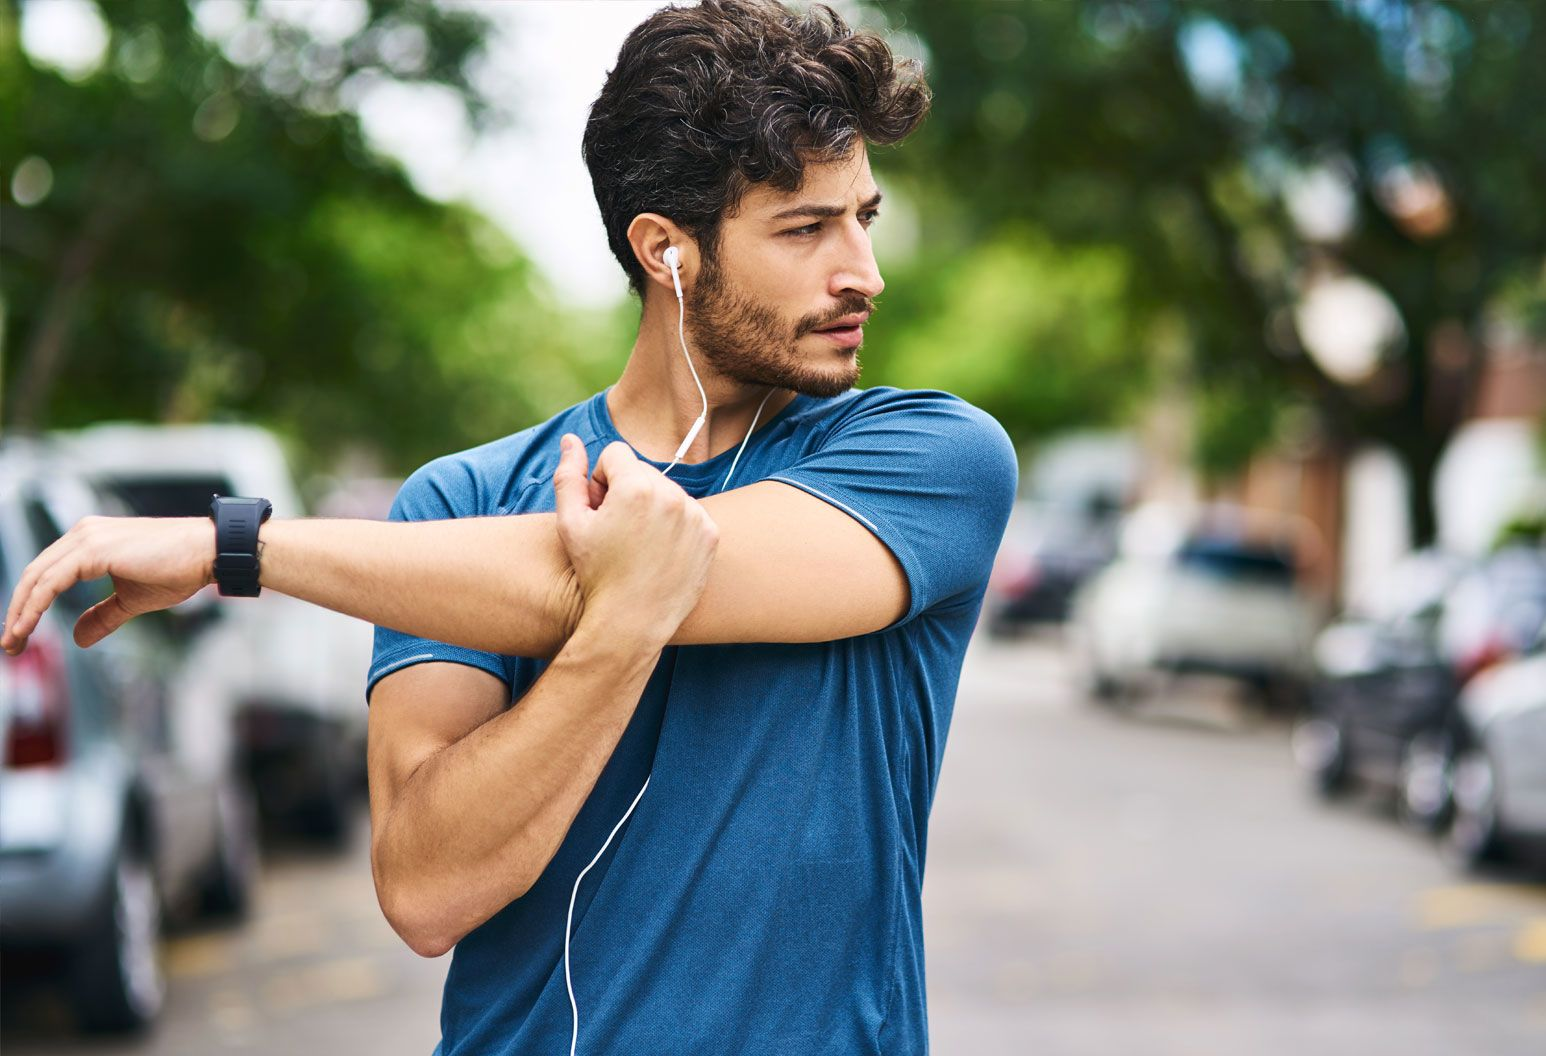 A man in his 20s stretches his arm outside. He wears headphones and a t-shirt and looks like he's about to go for a run.